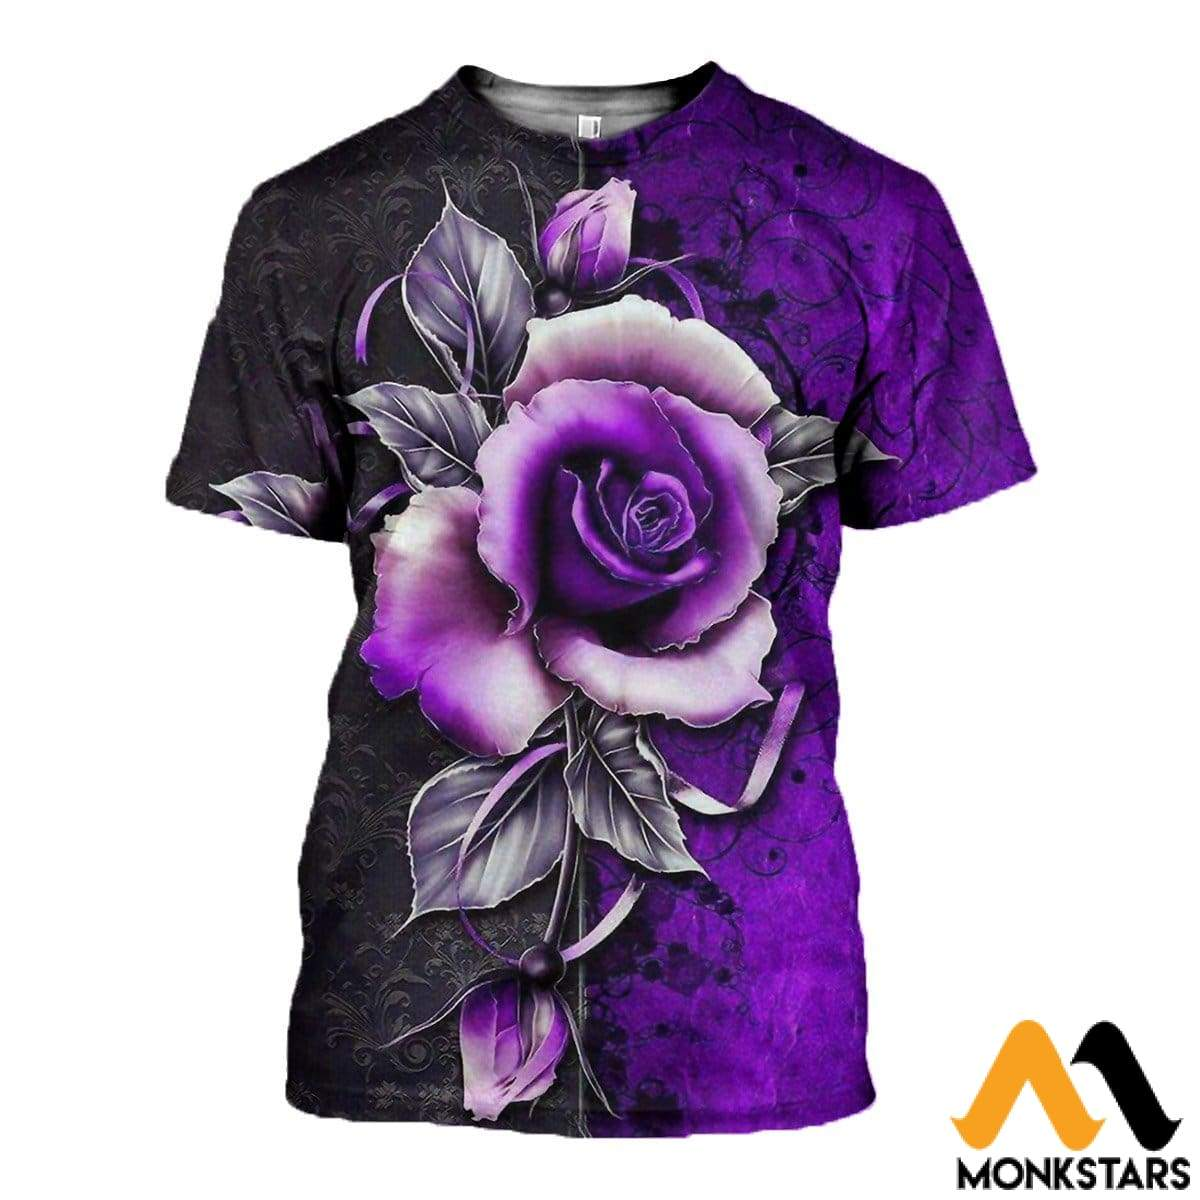 Image result for purple rose dress